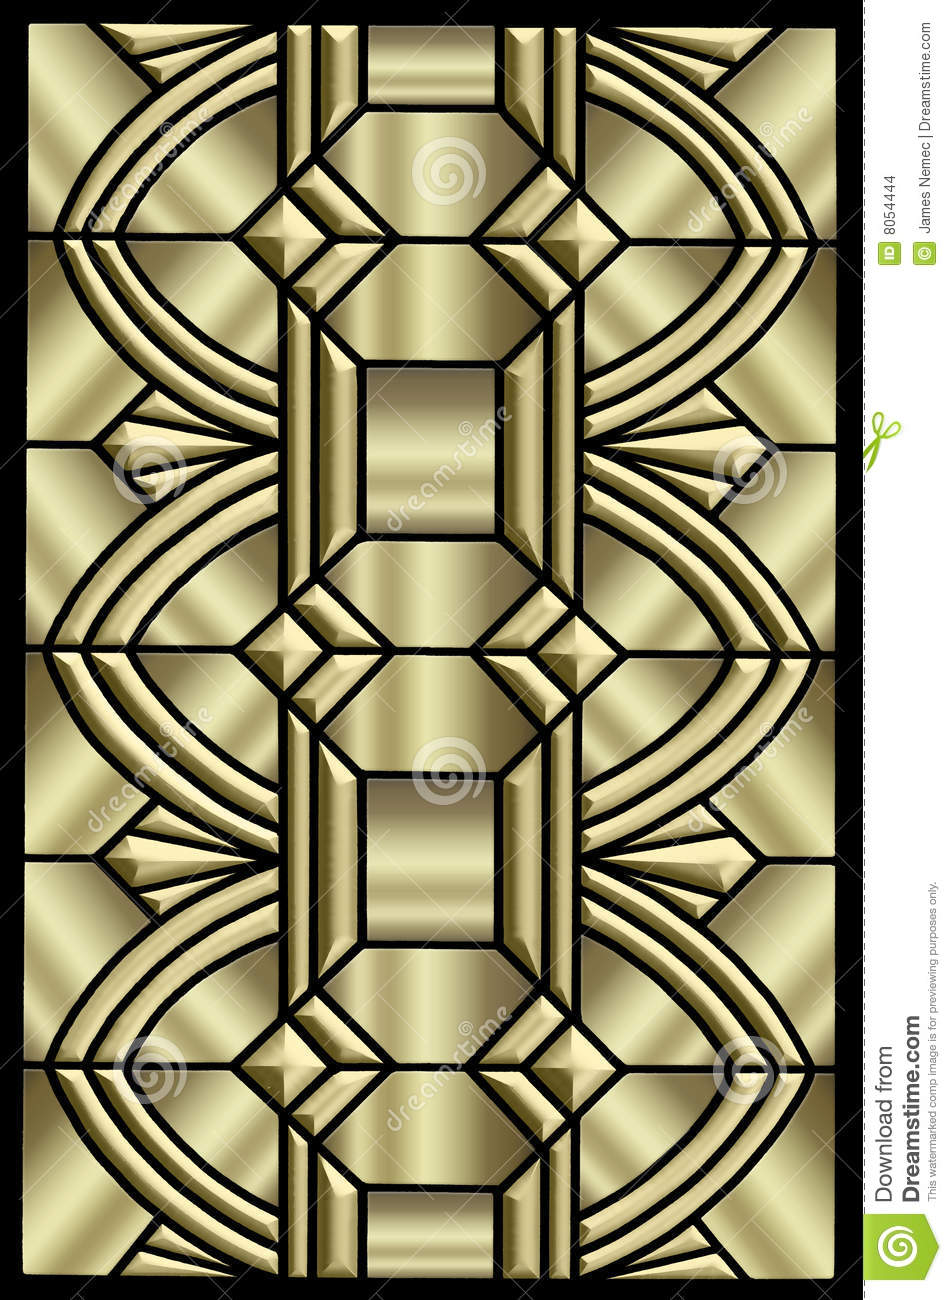 Metallic Art Deco Design Stock Images Image 8054444